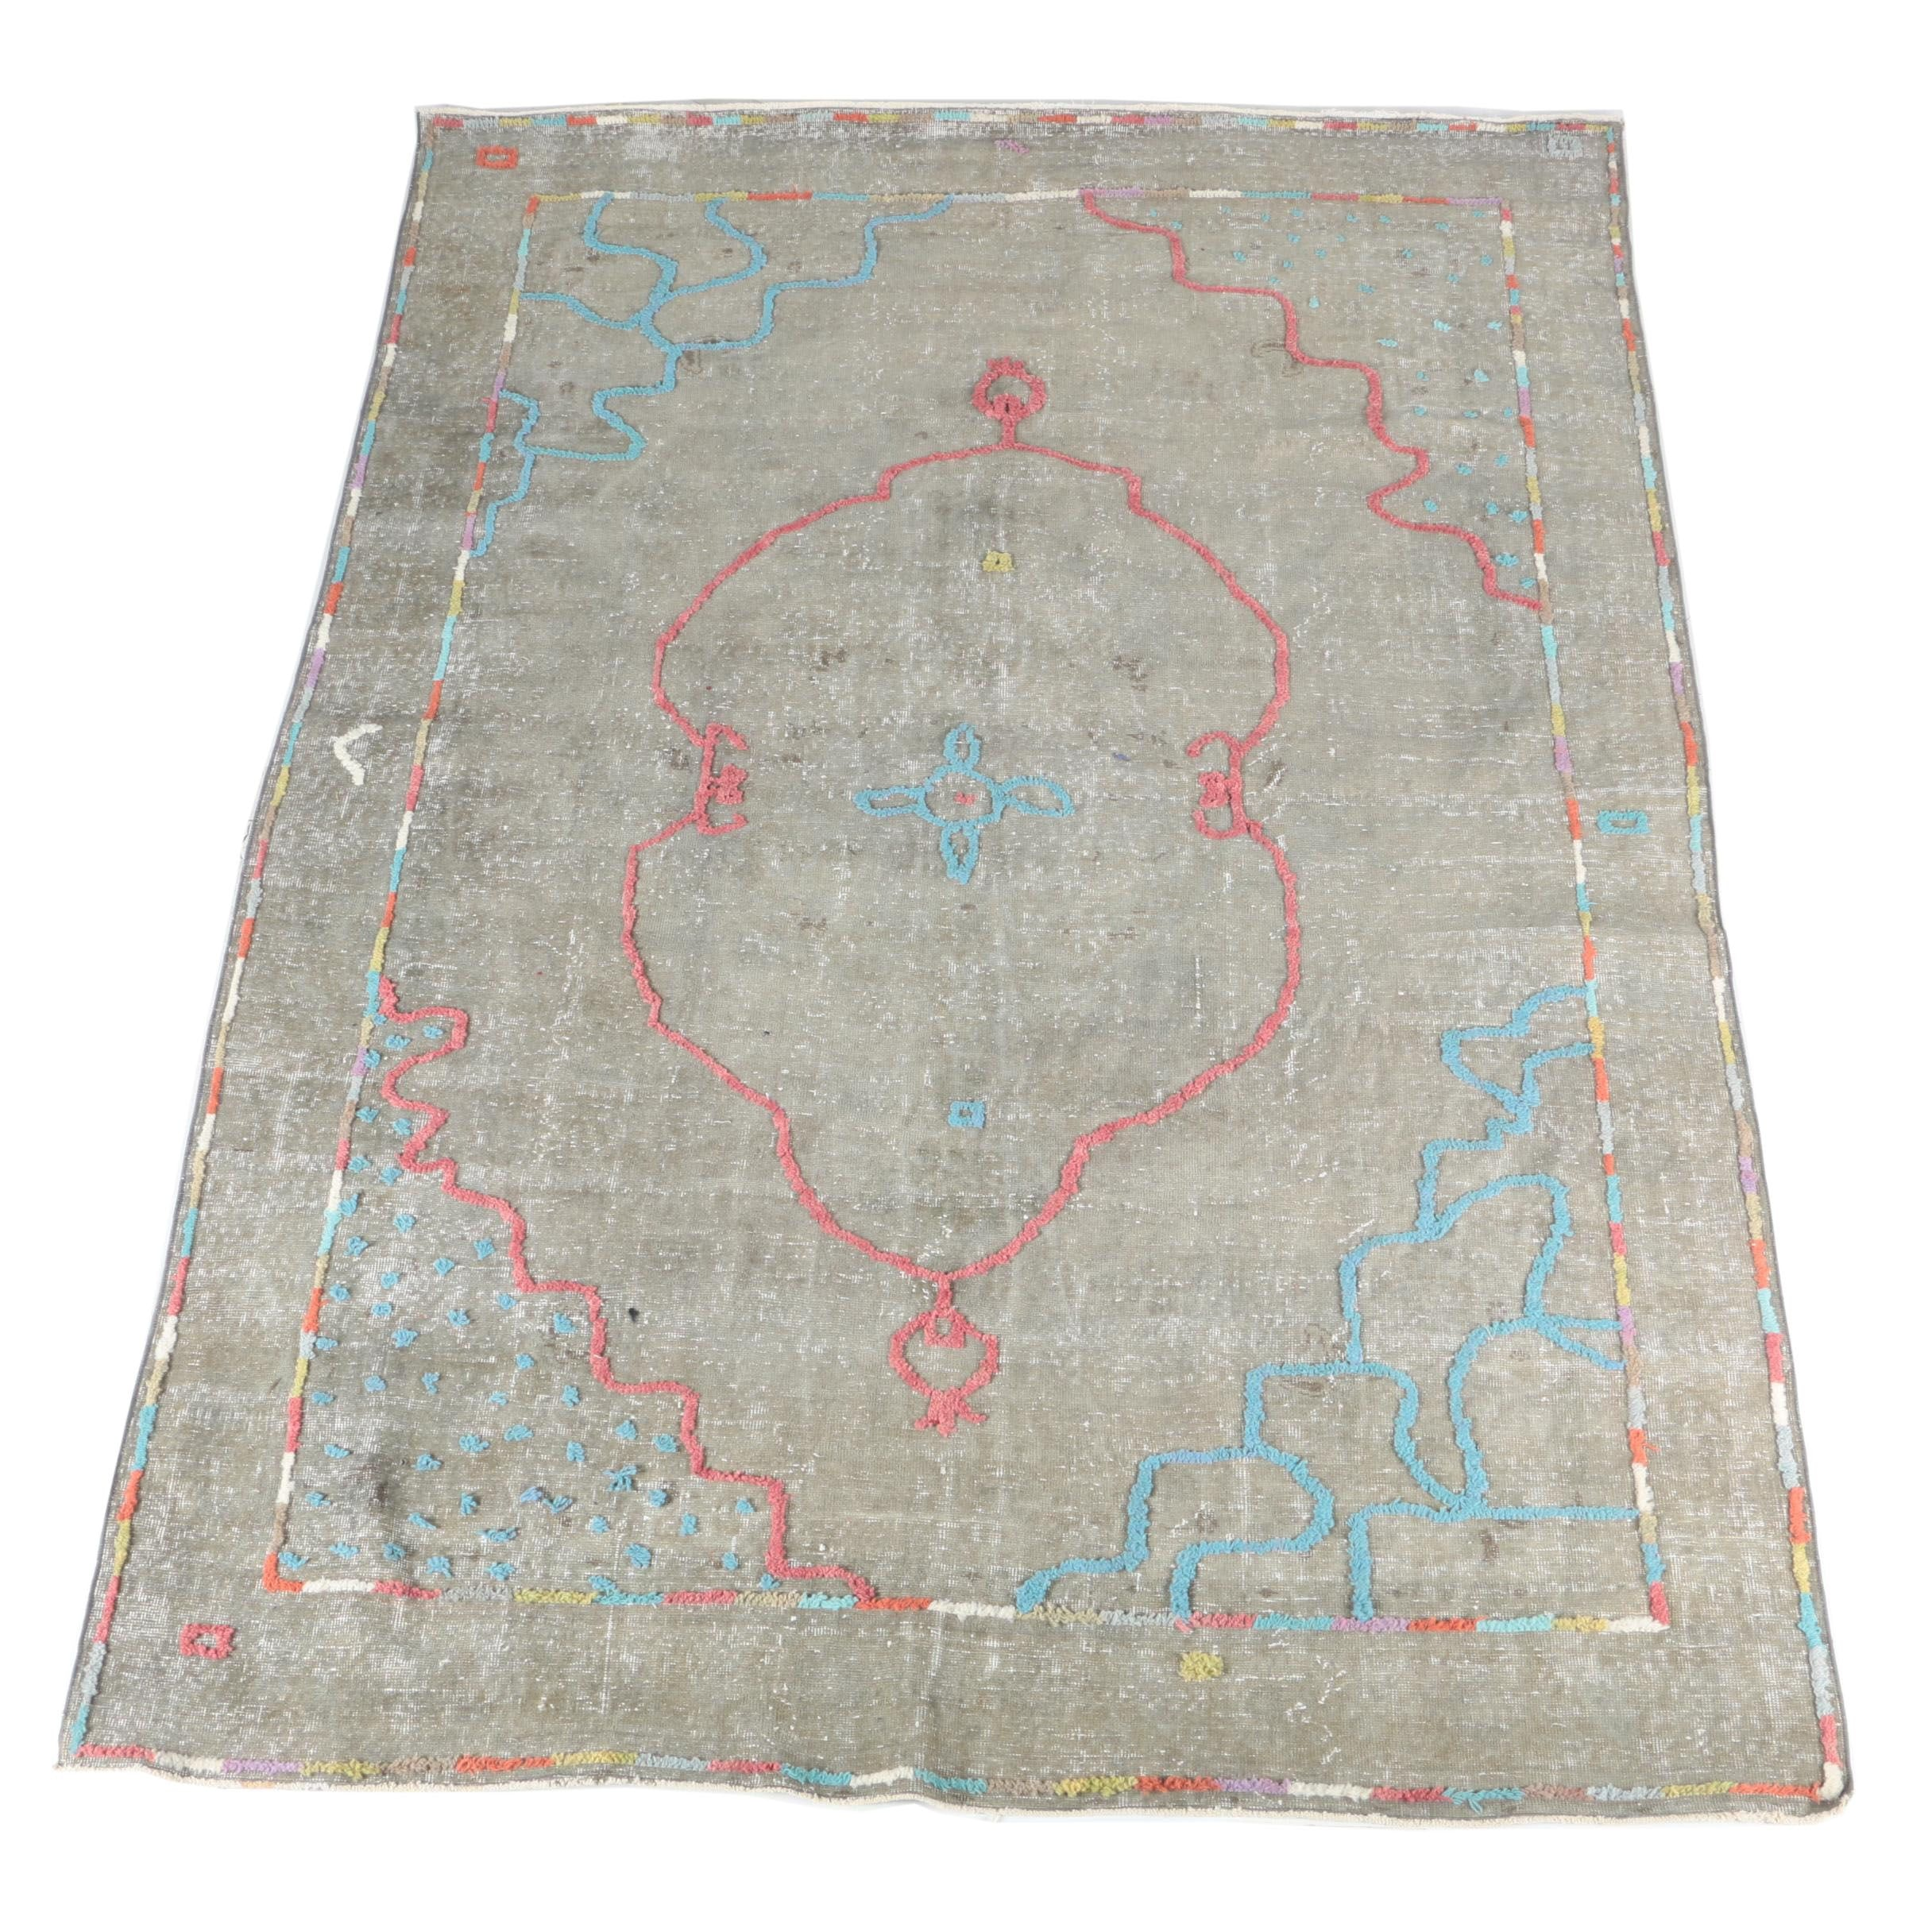 Hand-Knotted and Embroidered Overdyed Turkish Area Rug